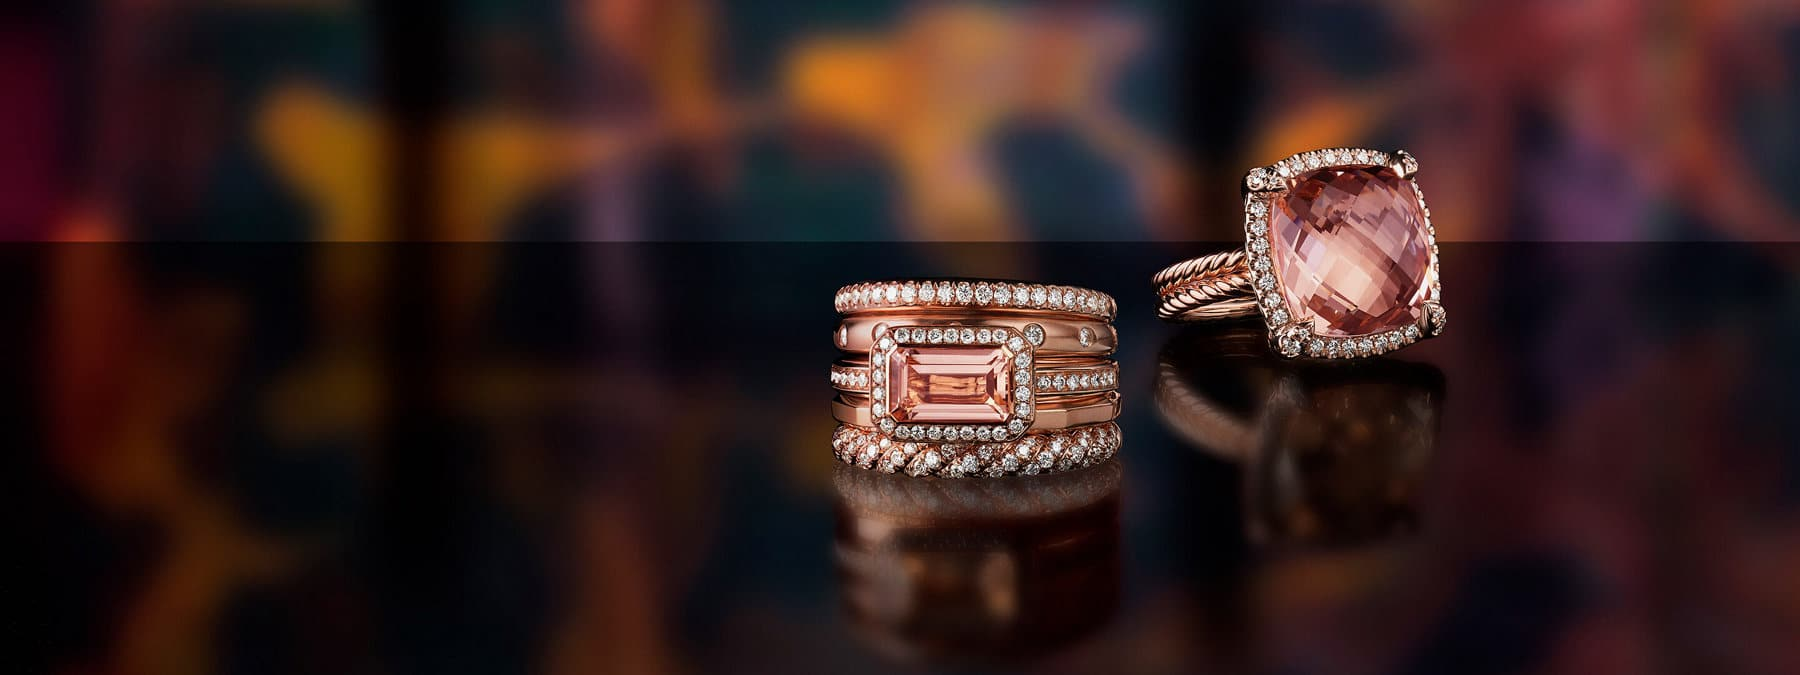 A color photograph shows a David Yurman Stax five-row ring and a Châtelaine ring scattered on a black reflective surface with a colorful stained glass panel illuminated behind them. The women's rings are crafted from 18K rose gold with pavé diamonds and morganite.